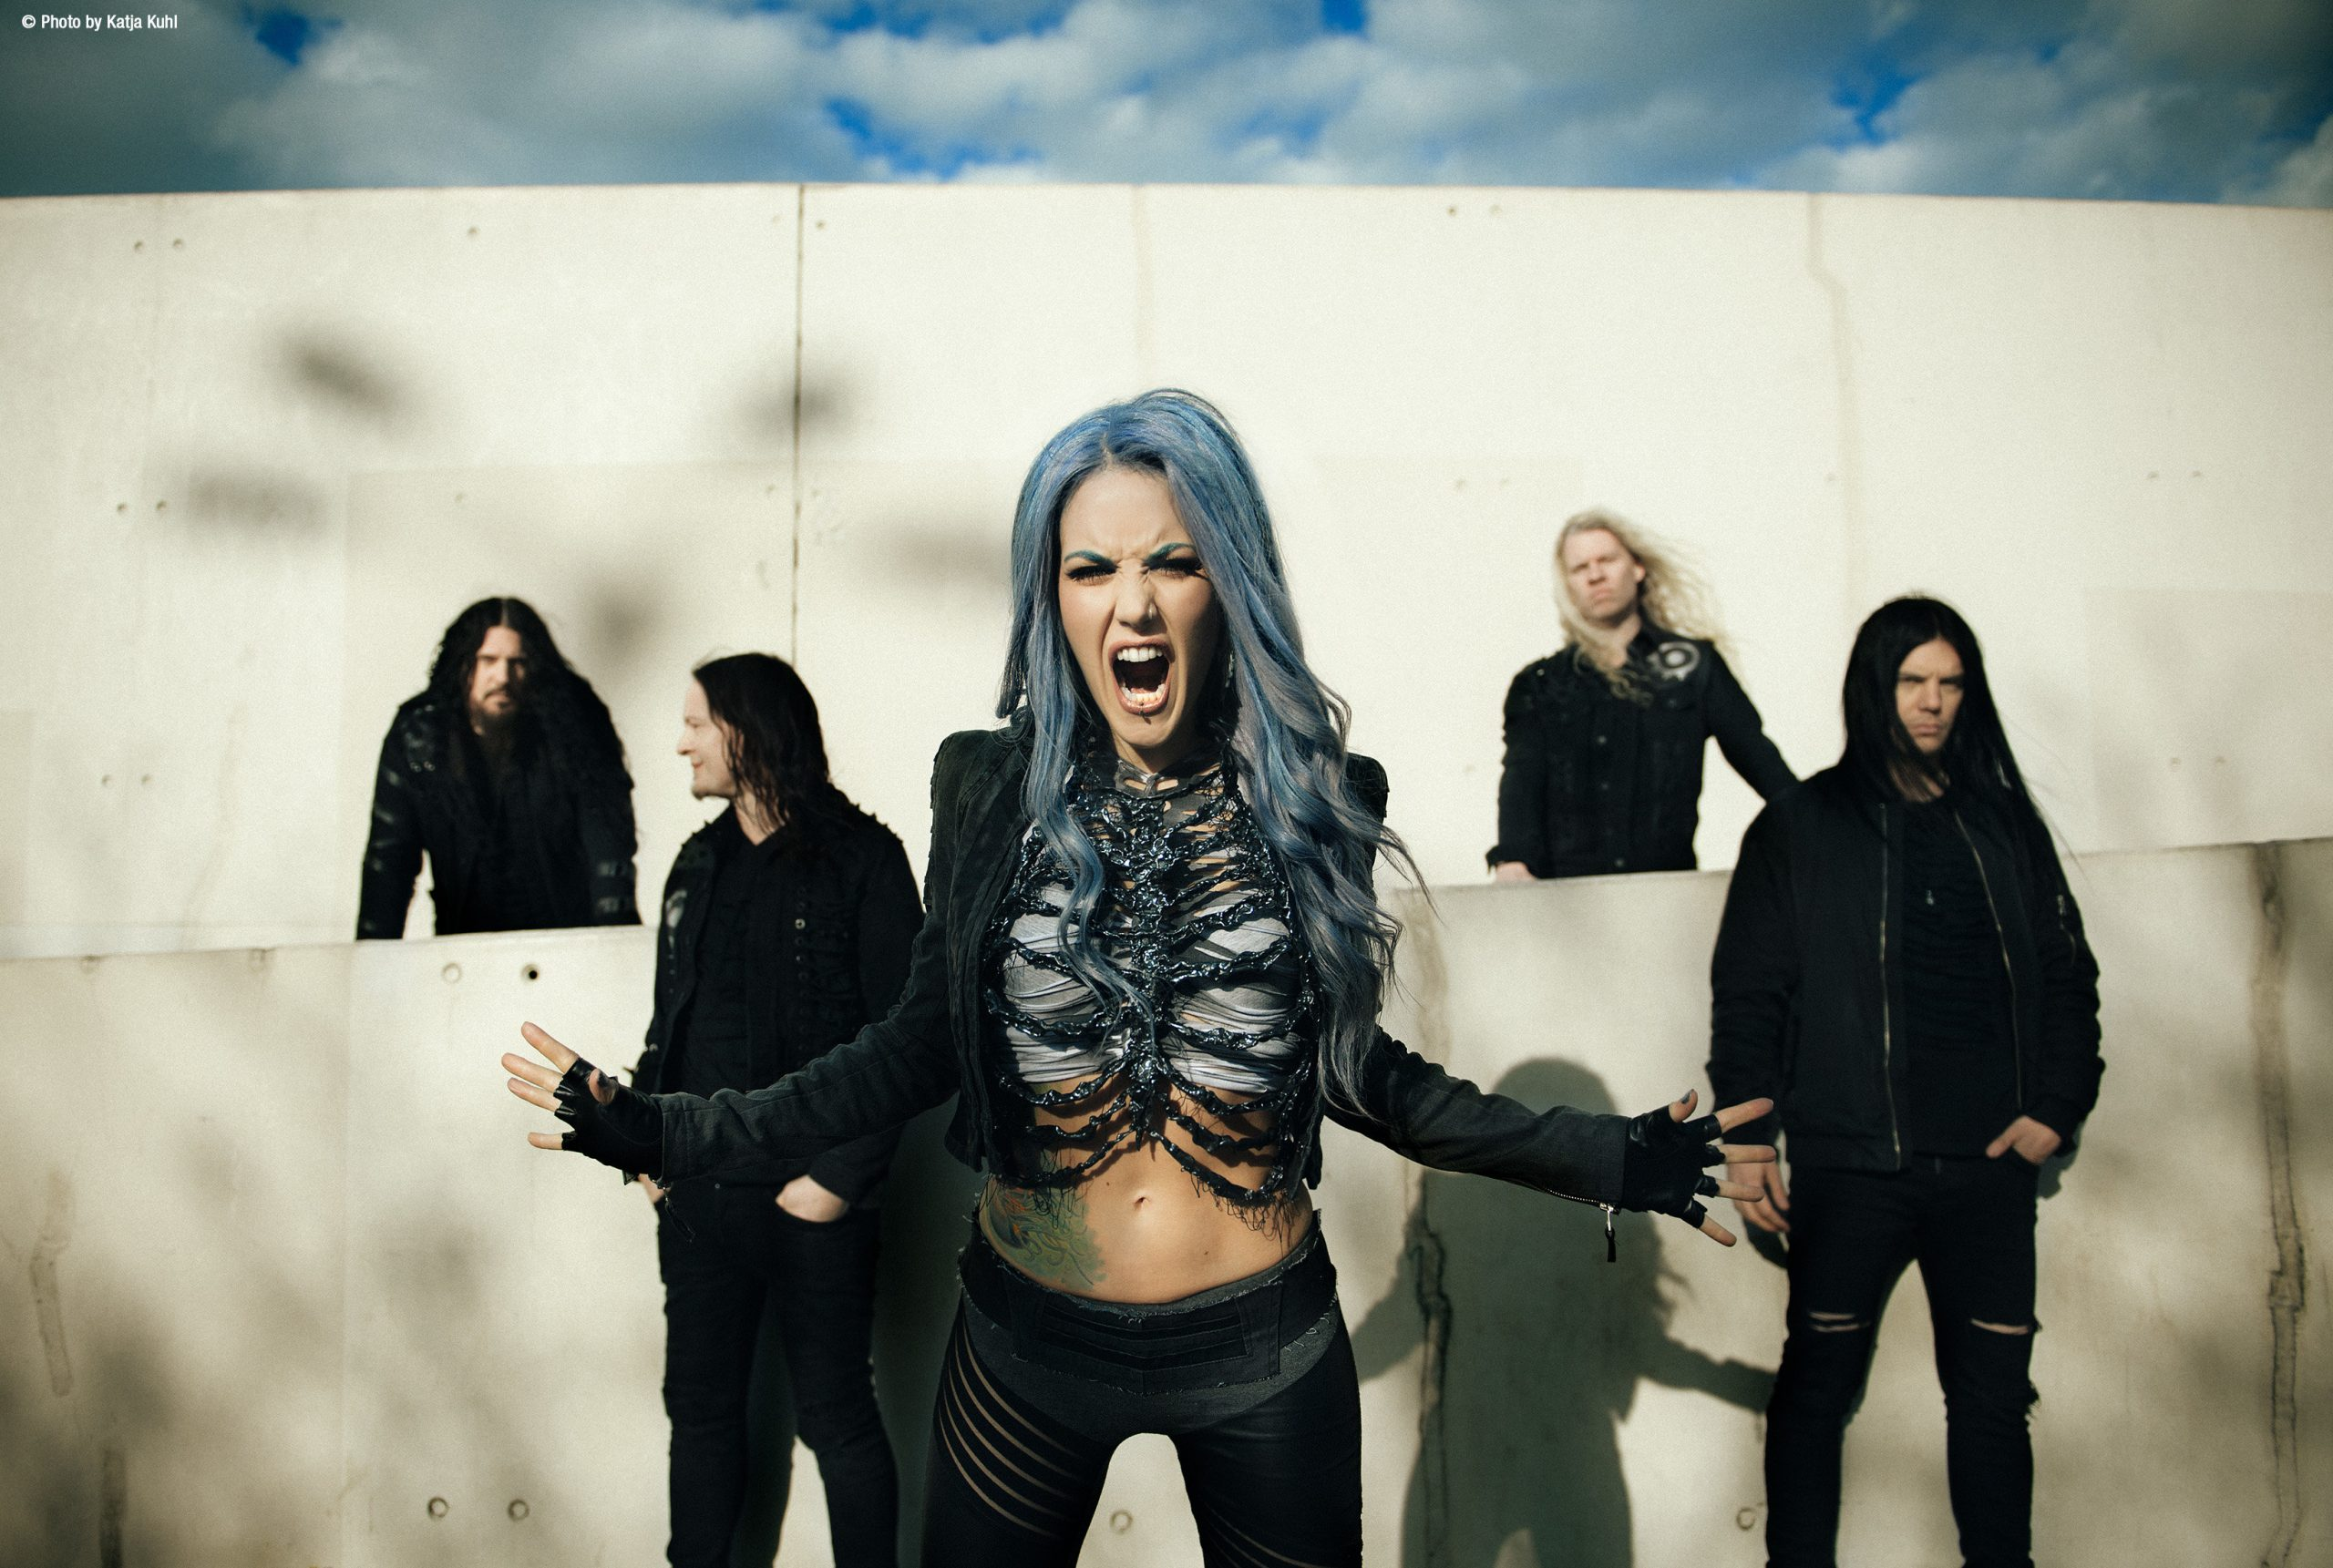 ARCH ENEMY - Ready for their Brazilian tour in November!